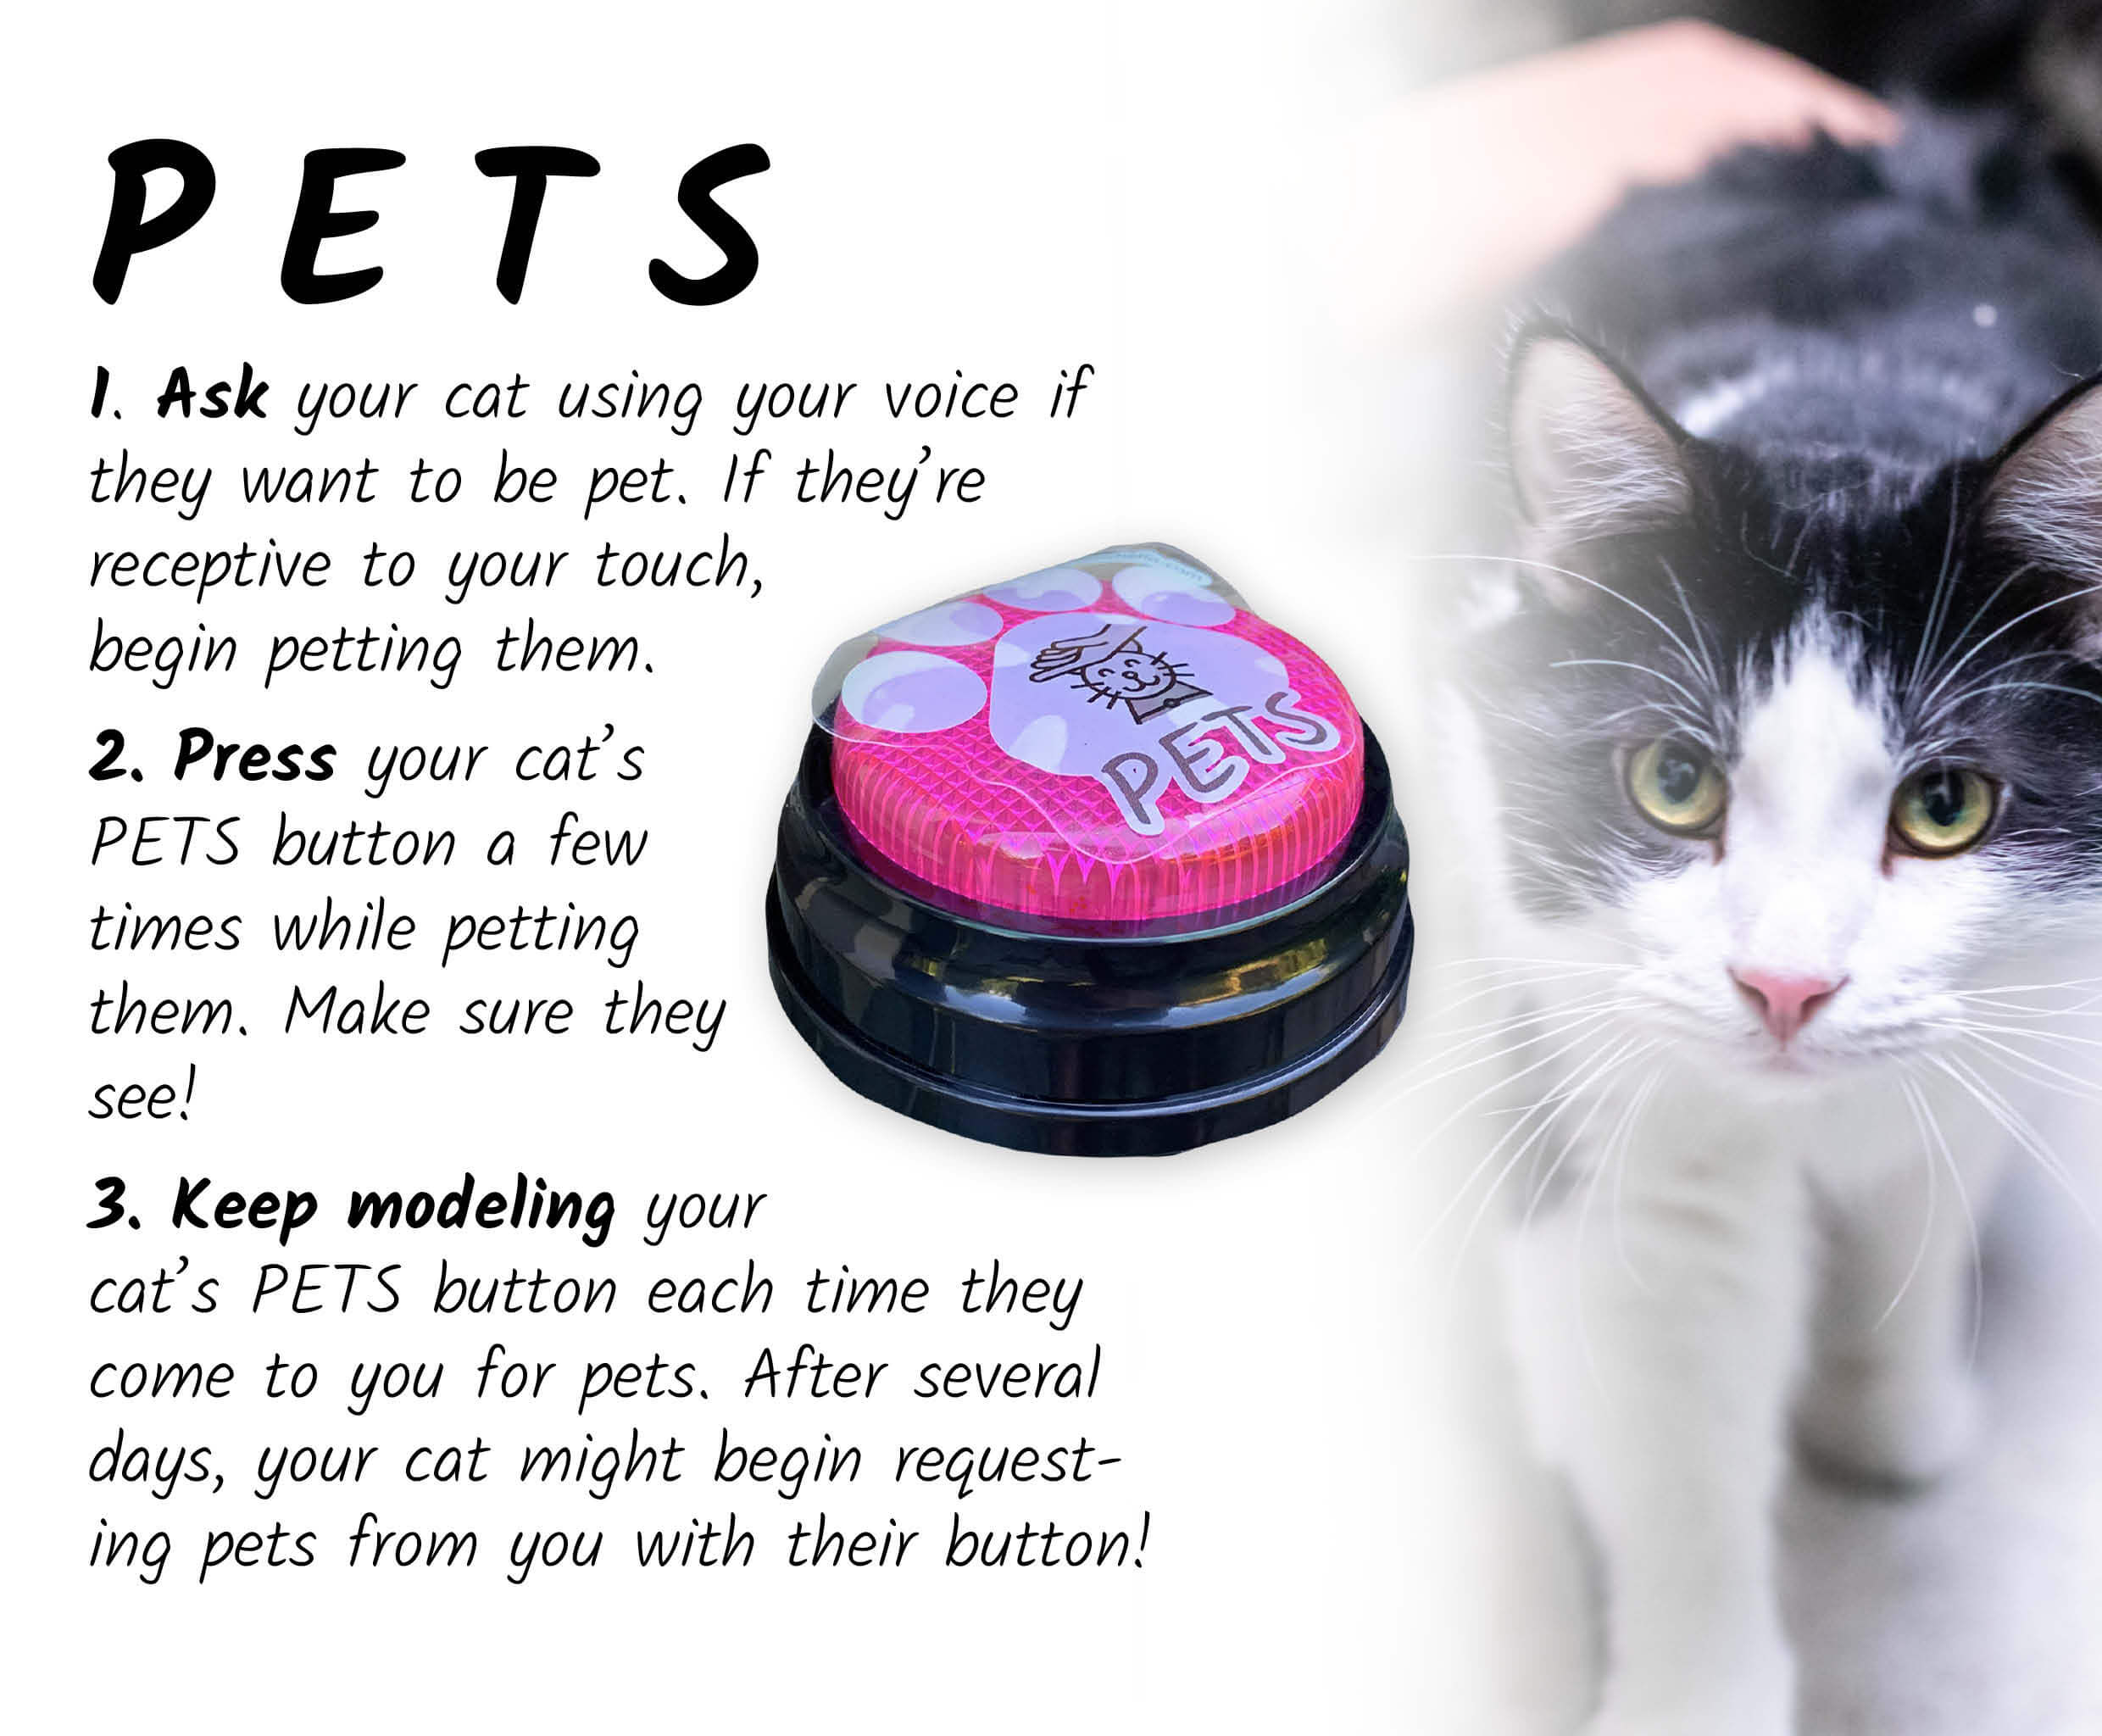 Pink pets speech button for cats to the left of a cat being pet. To the left of the button are the following instructions. First, ask your cat using your voice if they want to be pet. If they're receptive to your touch, begin petting them. Next, press you cat's pets button a few times while petting them. Make sure they see! Finally, keep modeling your cat's PETS button each time they come to you for pets. After several days, your cat might begin requesting pets from you with their button!